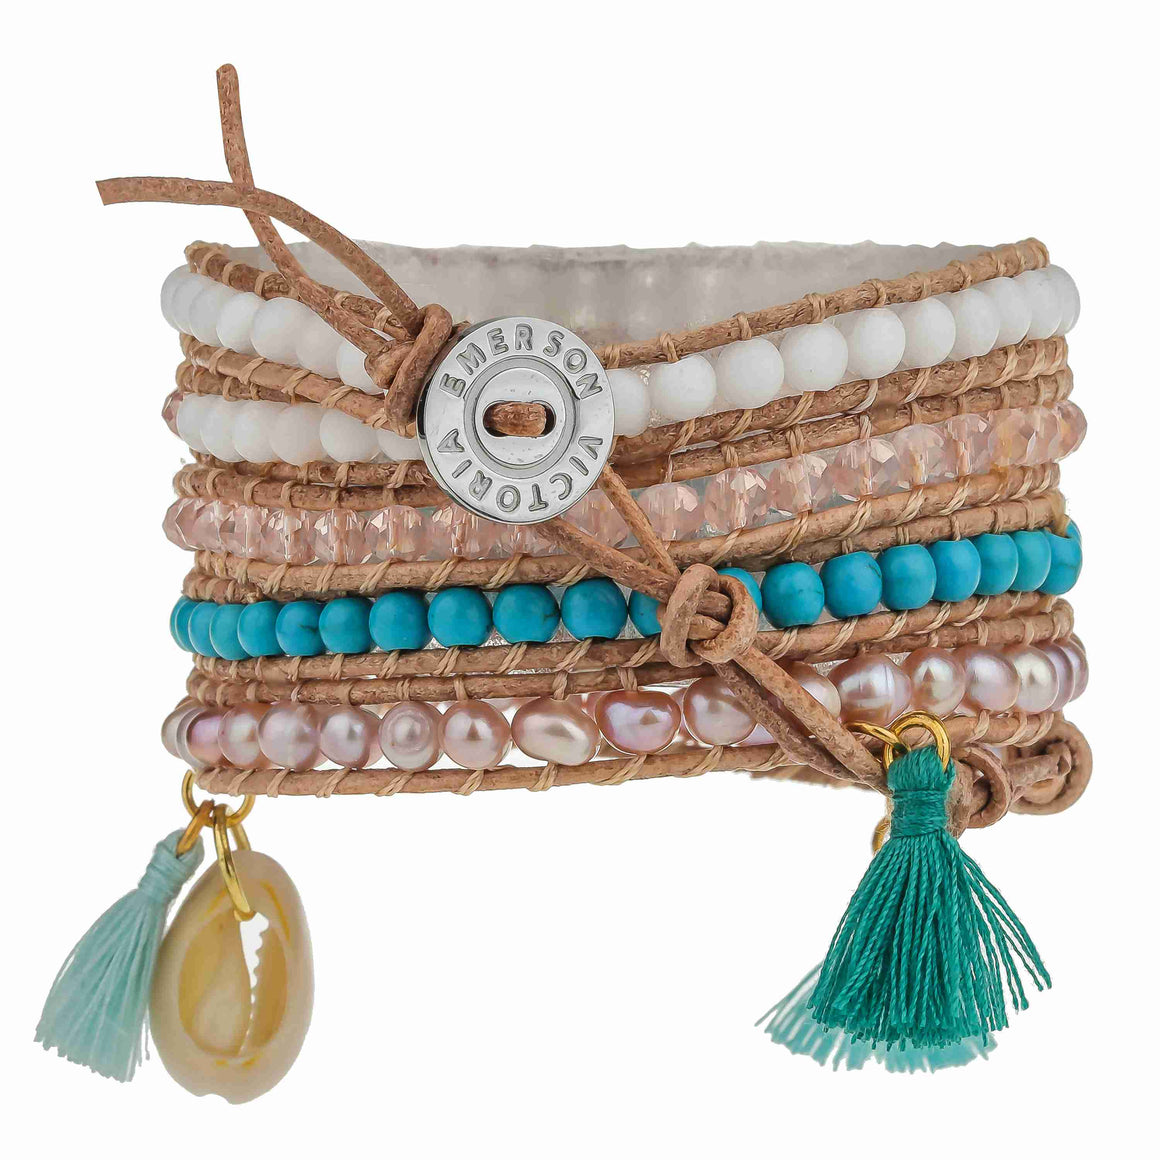 Rose Freshwater Pearls and Turquoise with Tassels on Natural